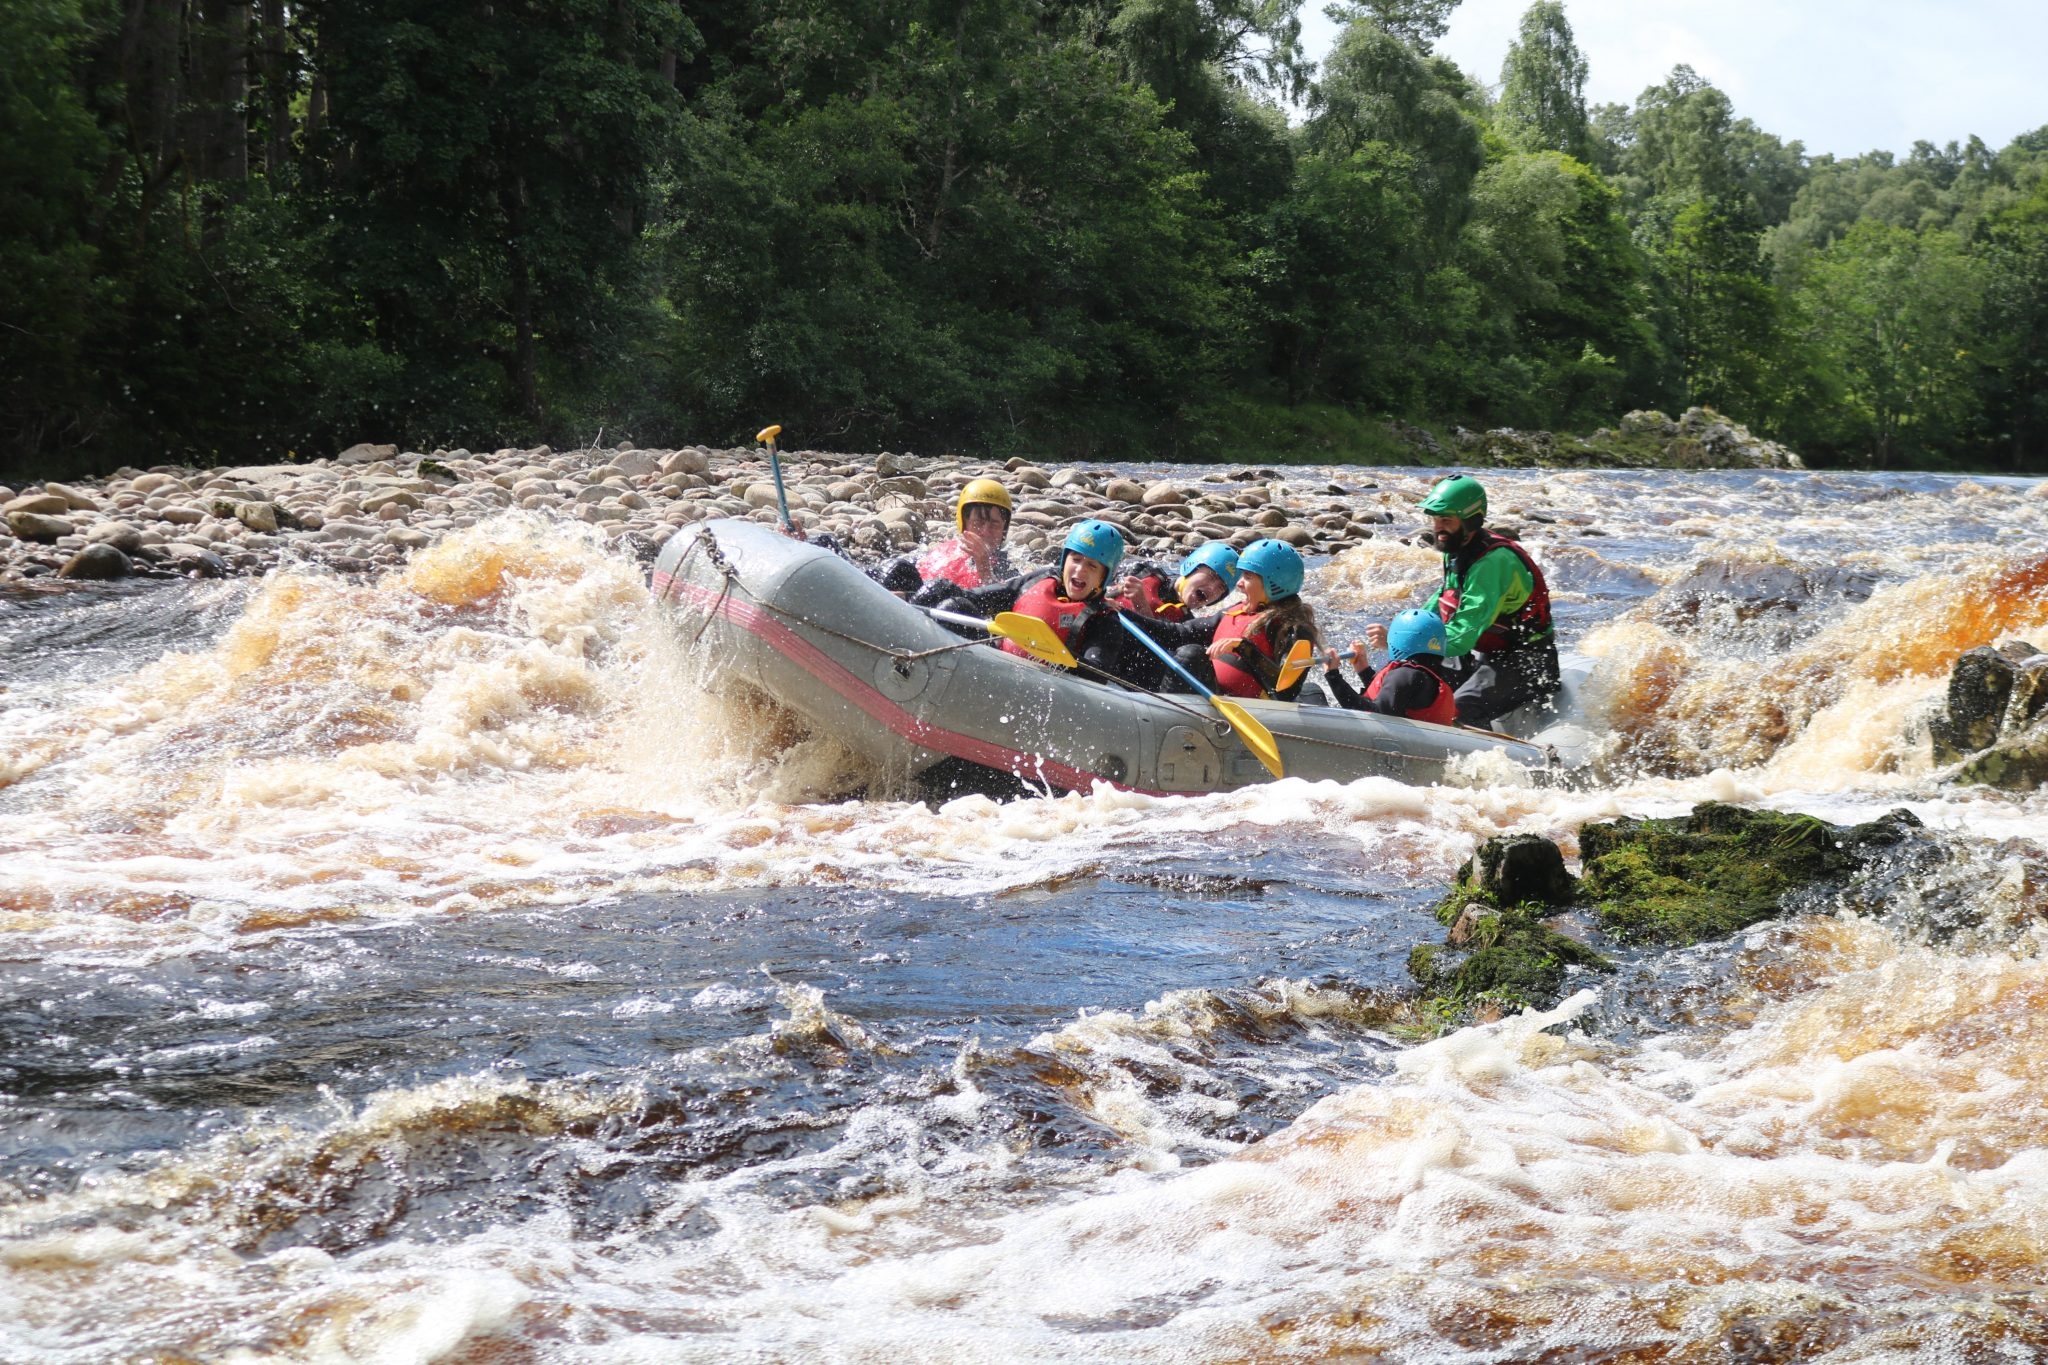 Whiter Water Rafting on the Findhorn